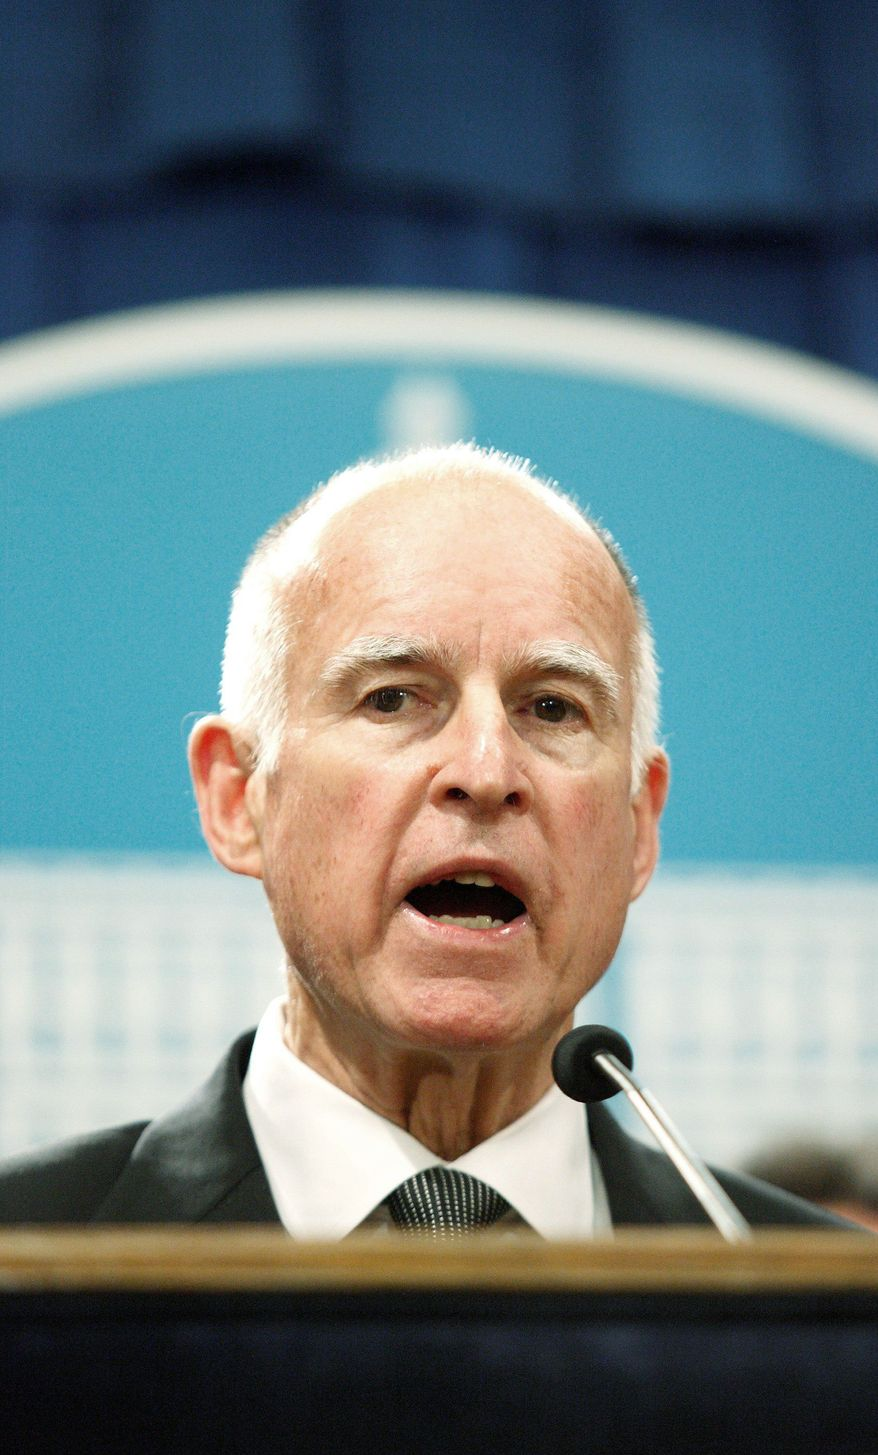 """There's more than one way to get to the goal, ... I'm going to find a way to get our budget balanced,"" says Calif. Gov. Jerry Brown. (Bloomberg)"